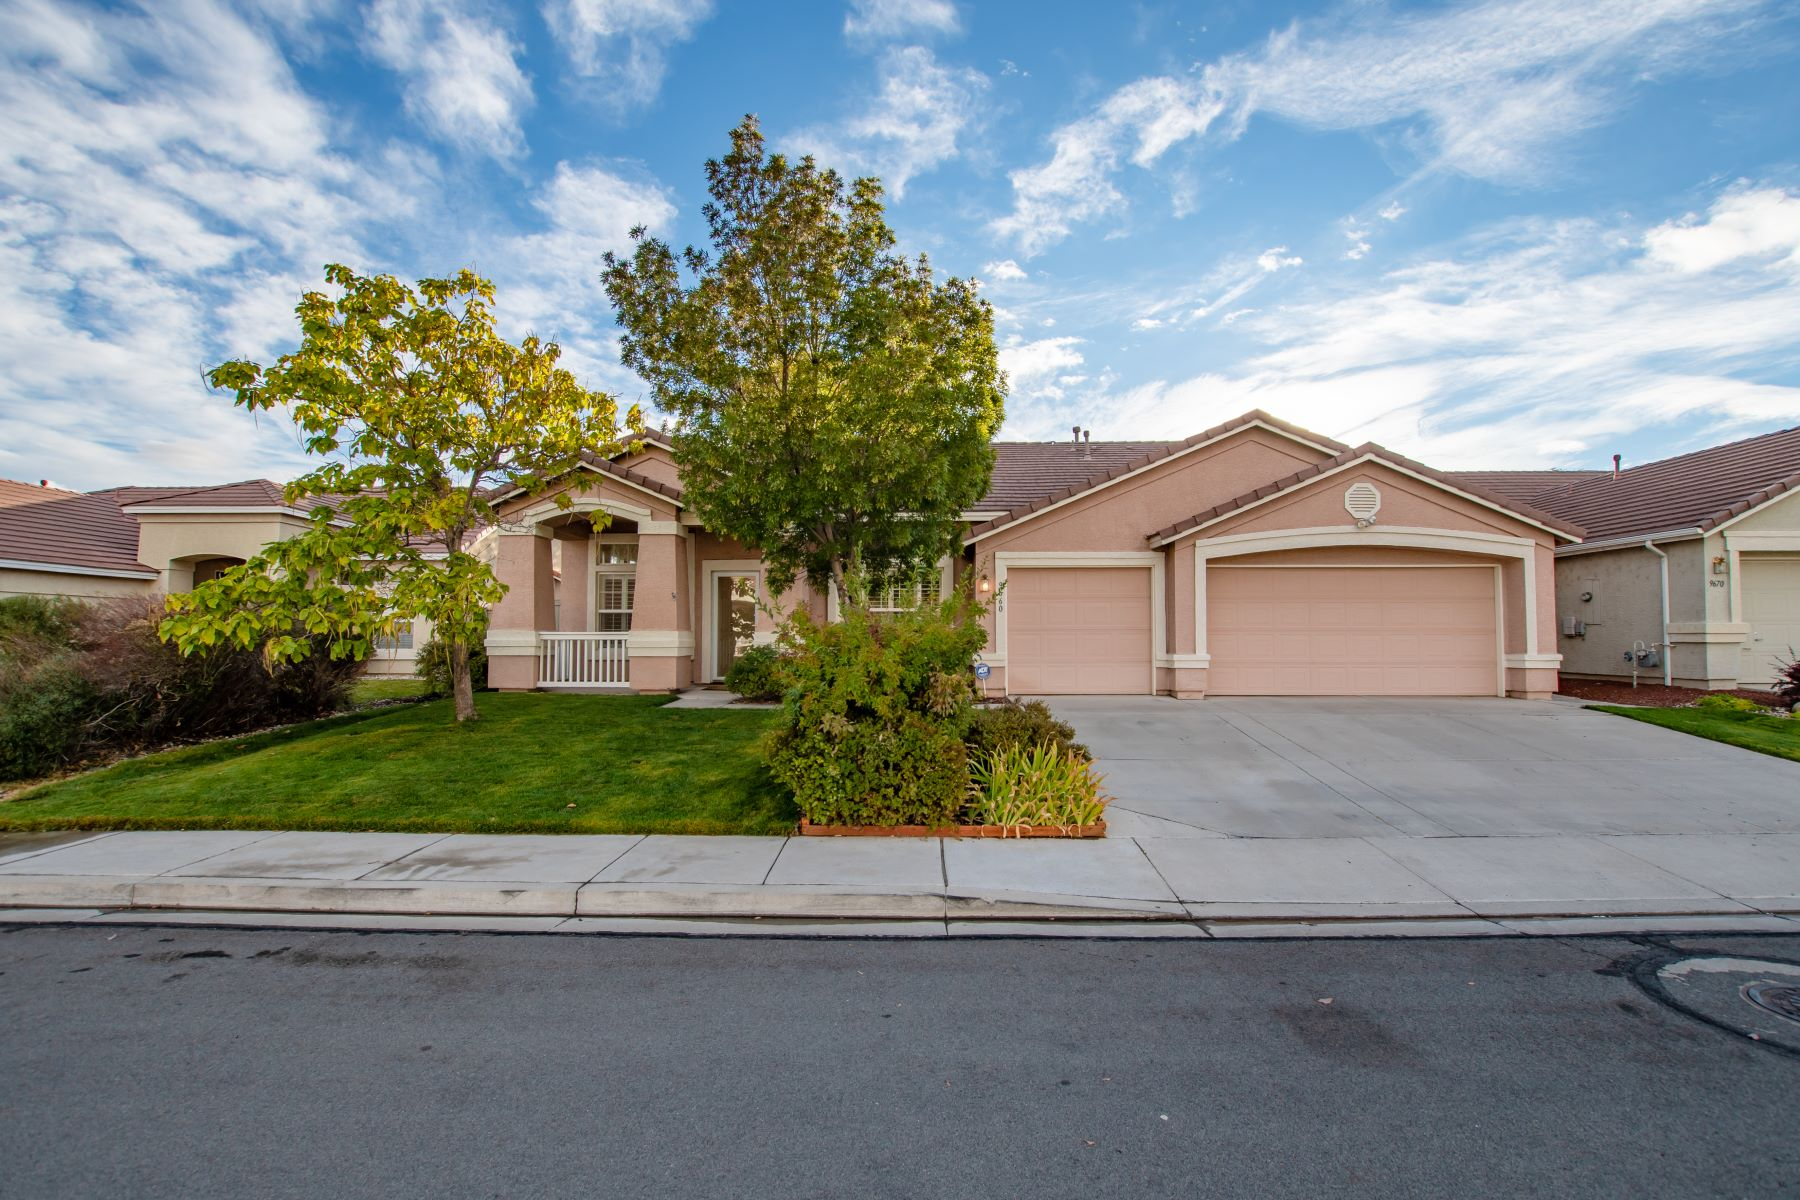 Single Family Home for Active at 9960 Frankwood Drive 9660 Frankwood Drive Reno, Nevada 89521 United States